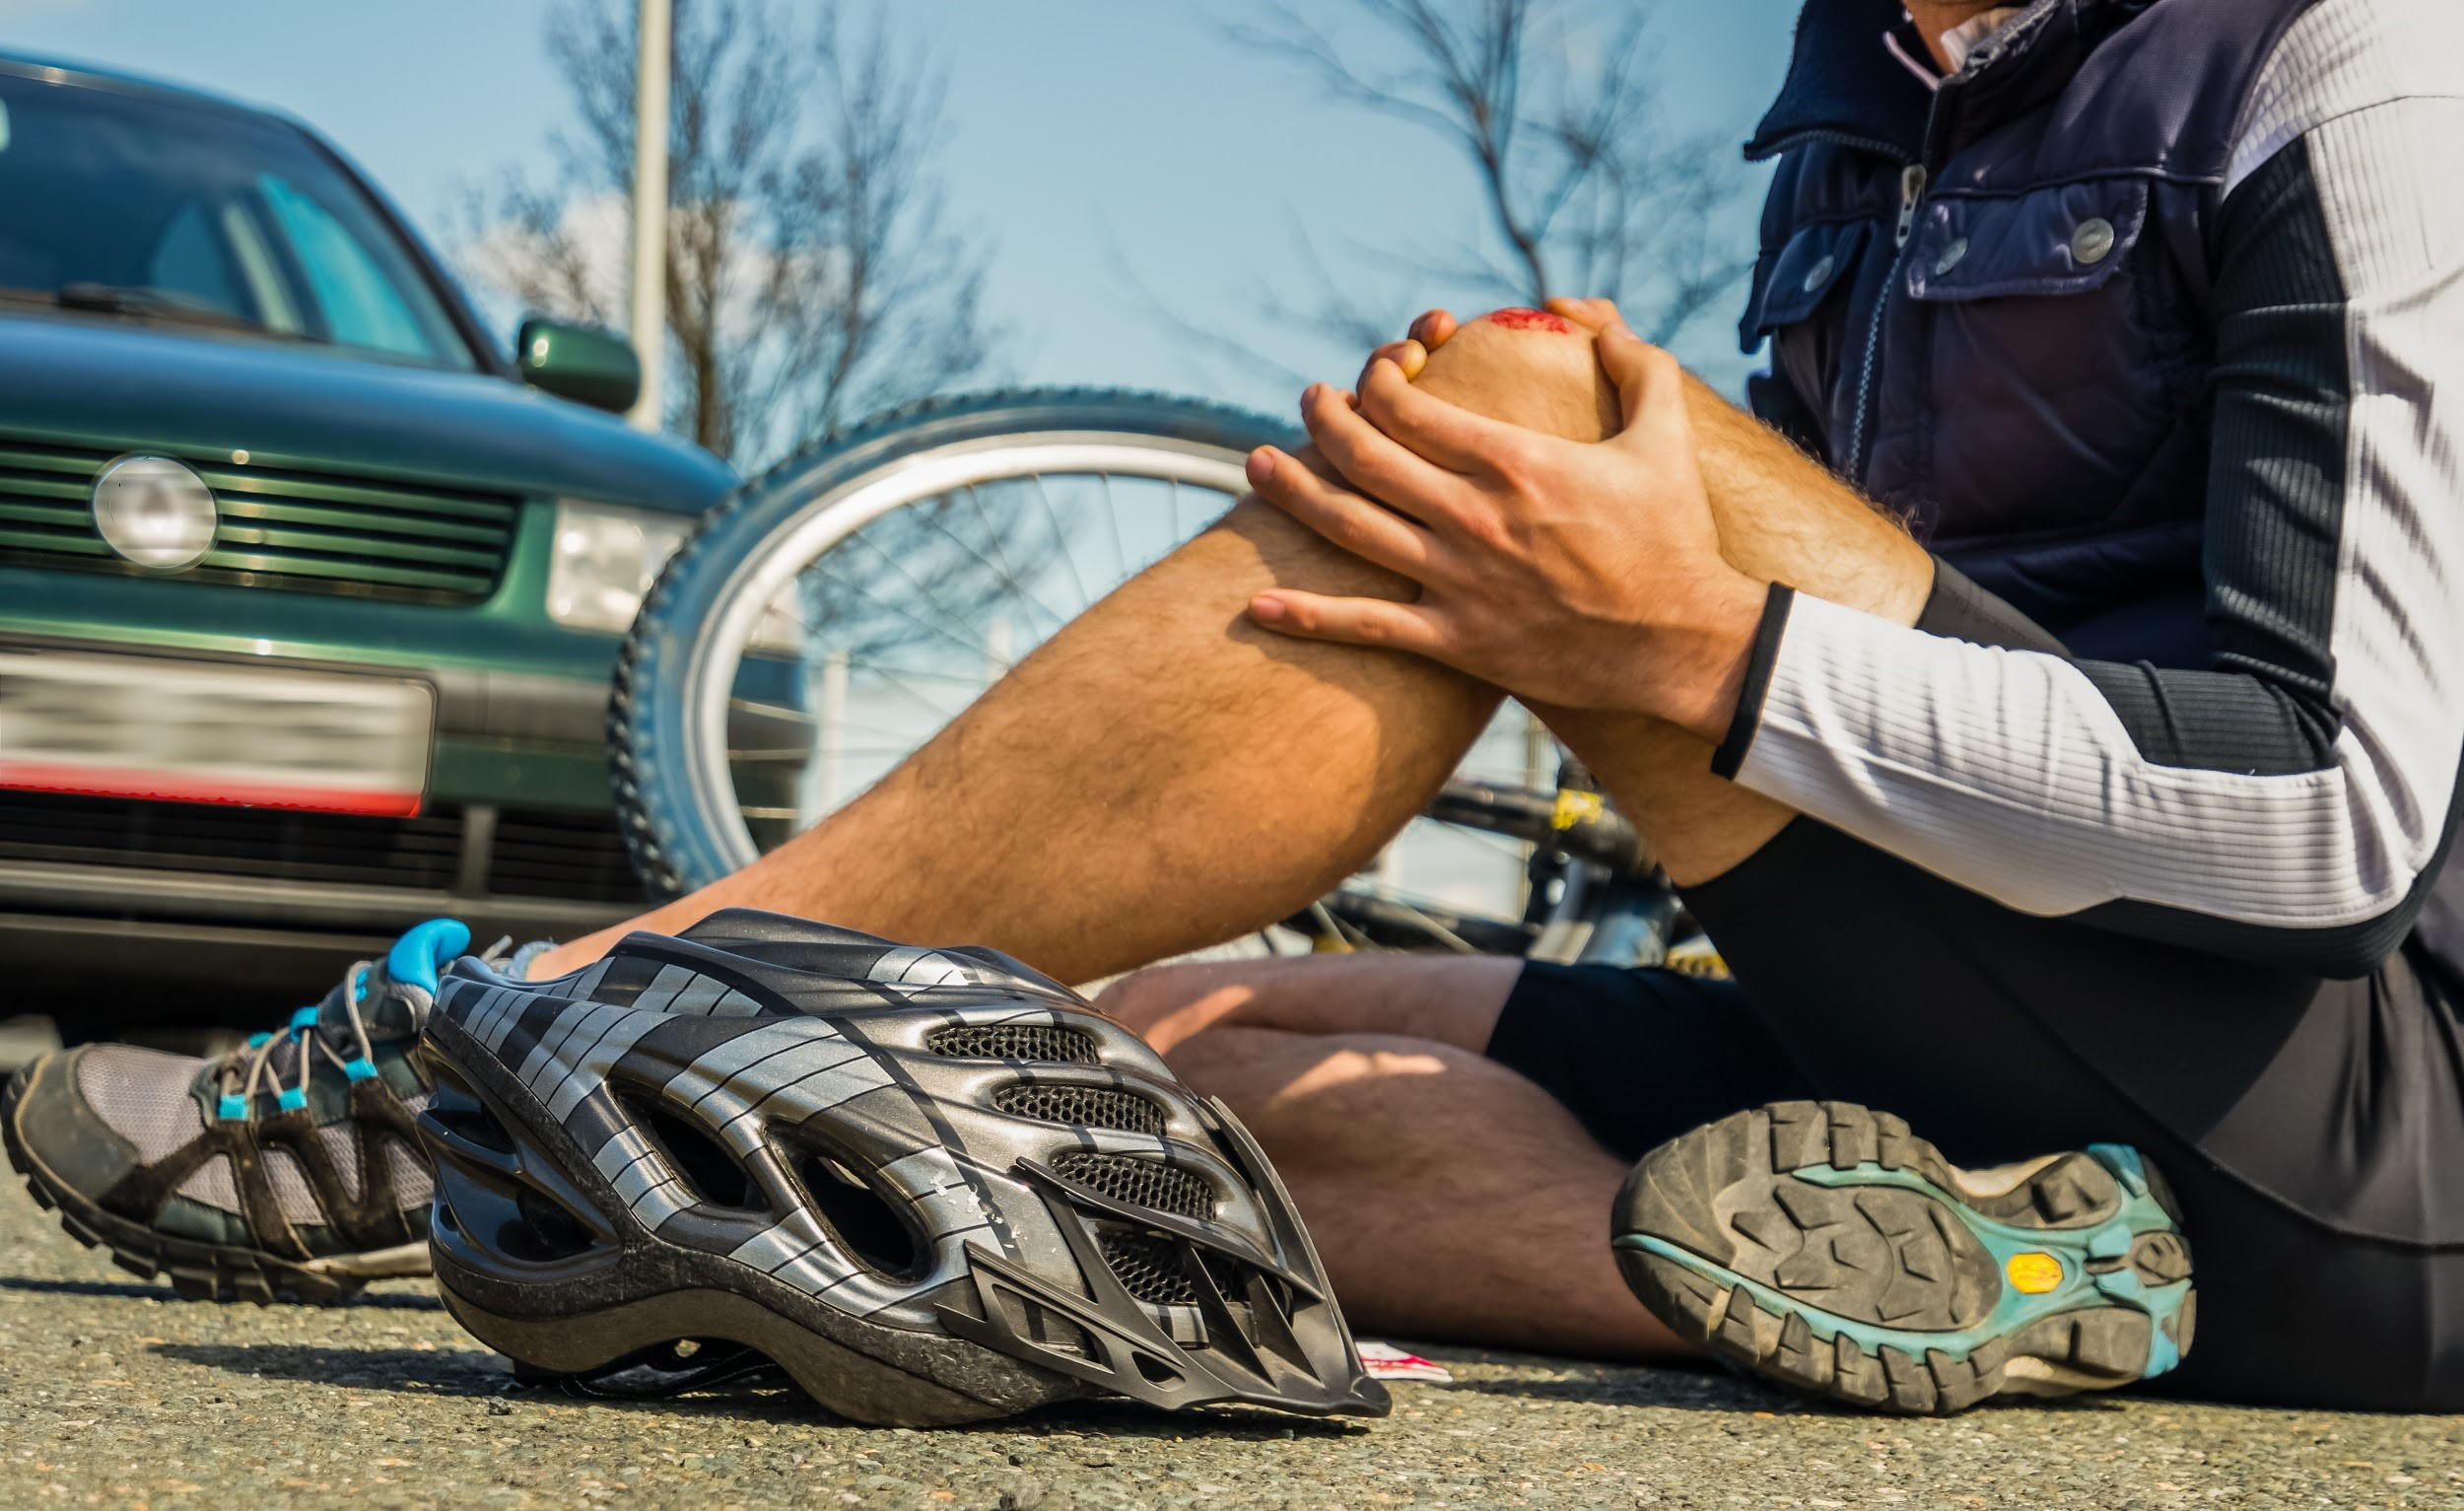 injured cyclist sitting on ground with bloody knee after accident